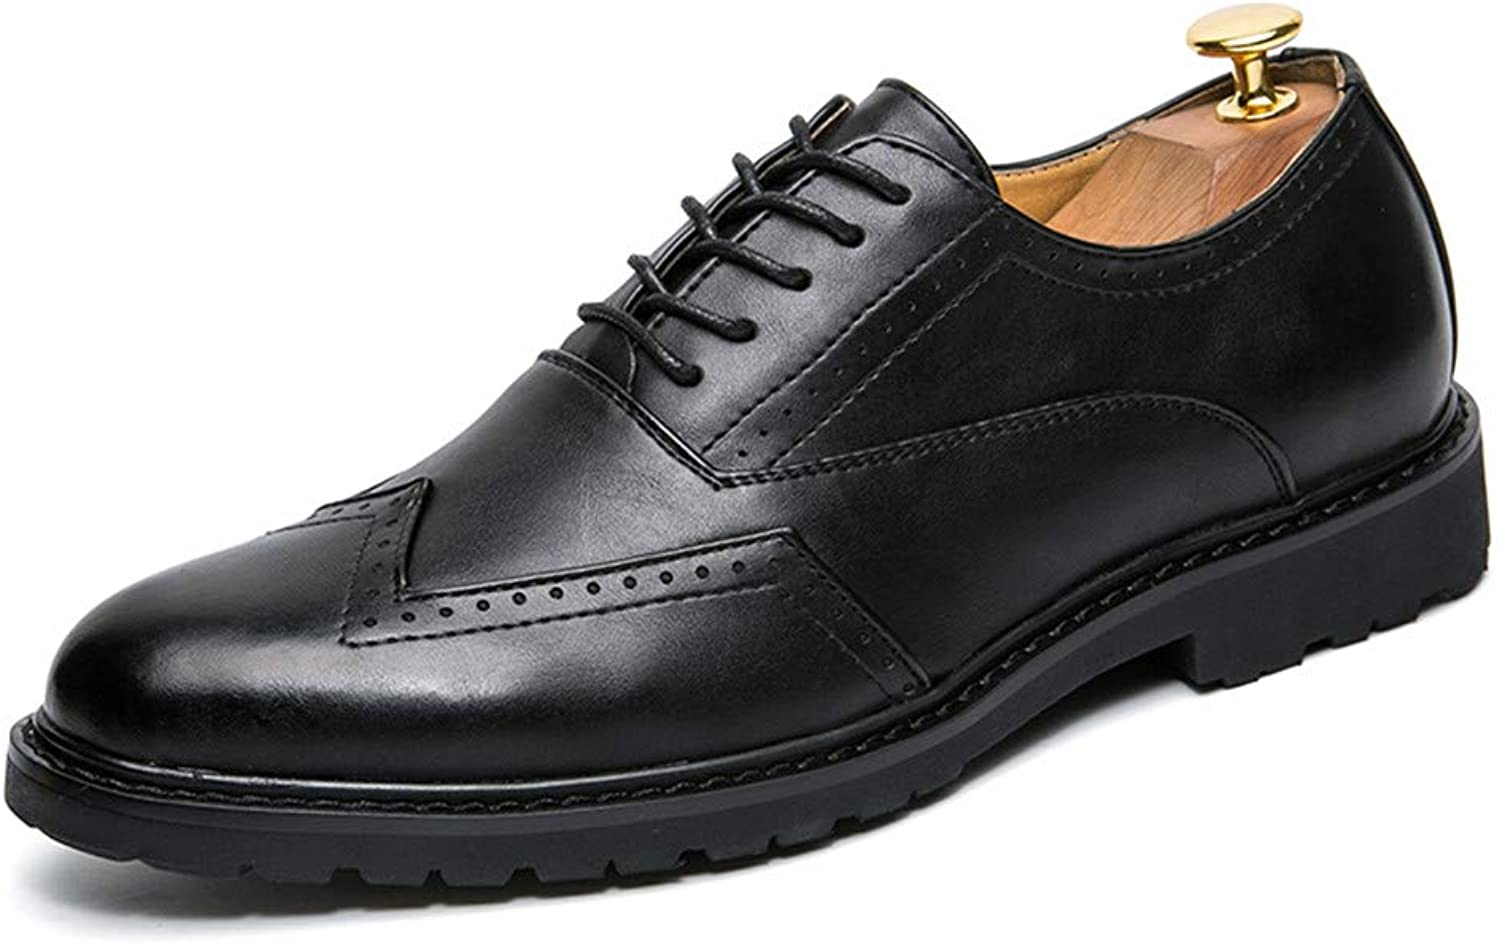 JIALUN-shoes Men's Classico Business Oxford Casual Fashion PU Leather Anti-Skid Breathable Brogue shoes